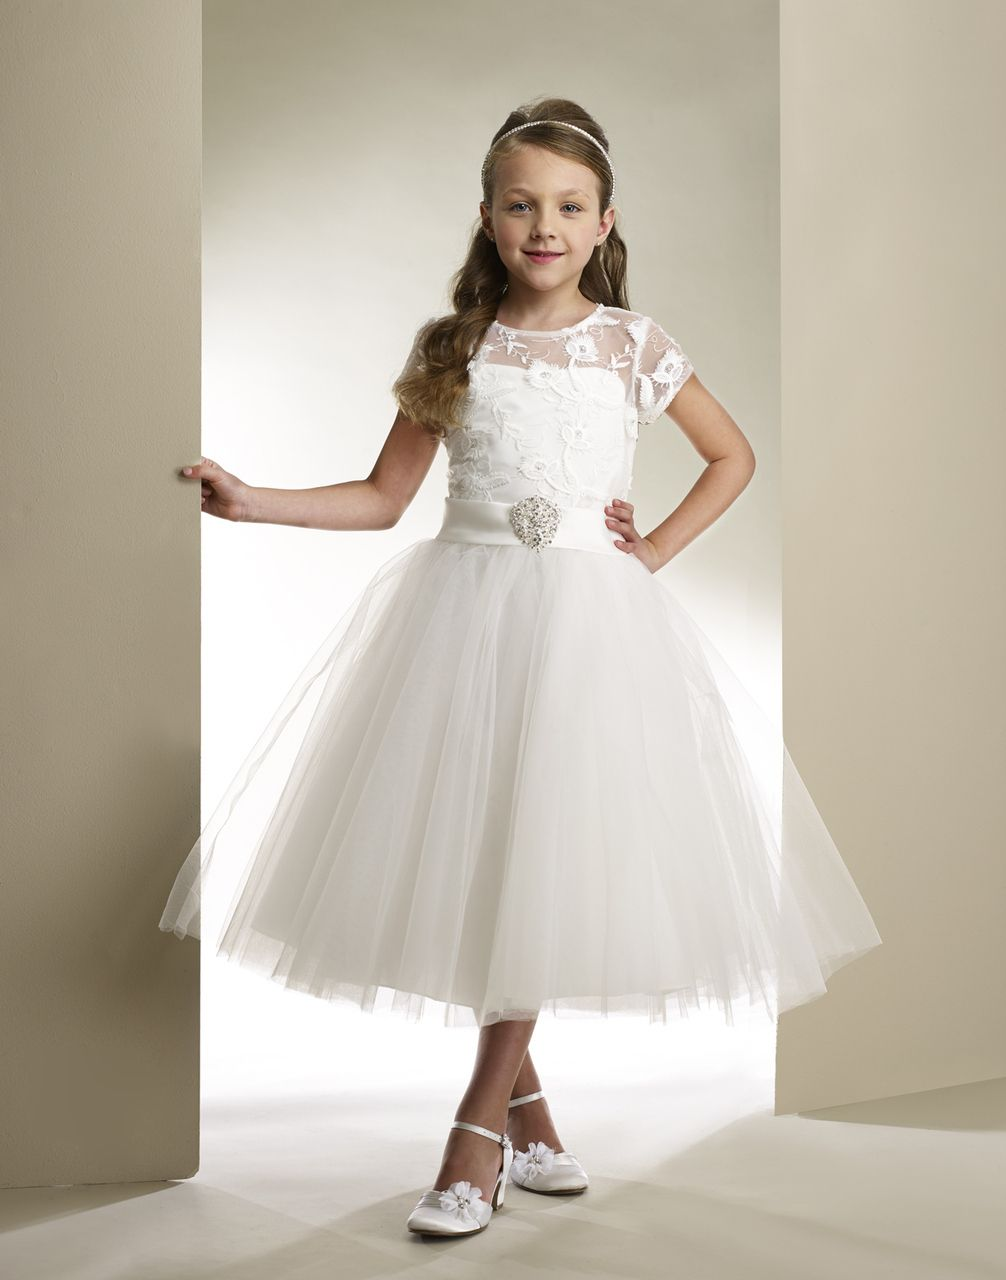 c838e473aaec Macis Princess White Lace Tulle Communion Dress | Communion Dresses ...